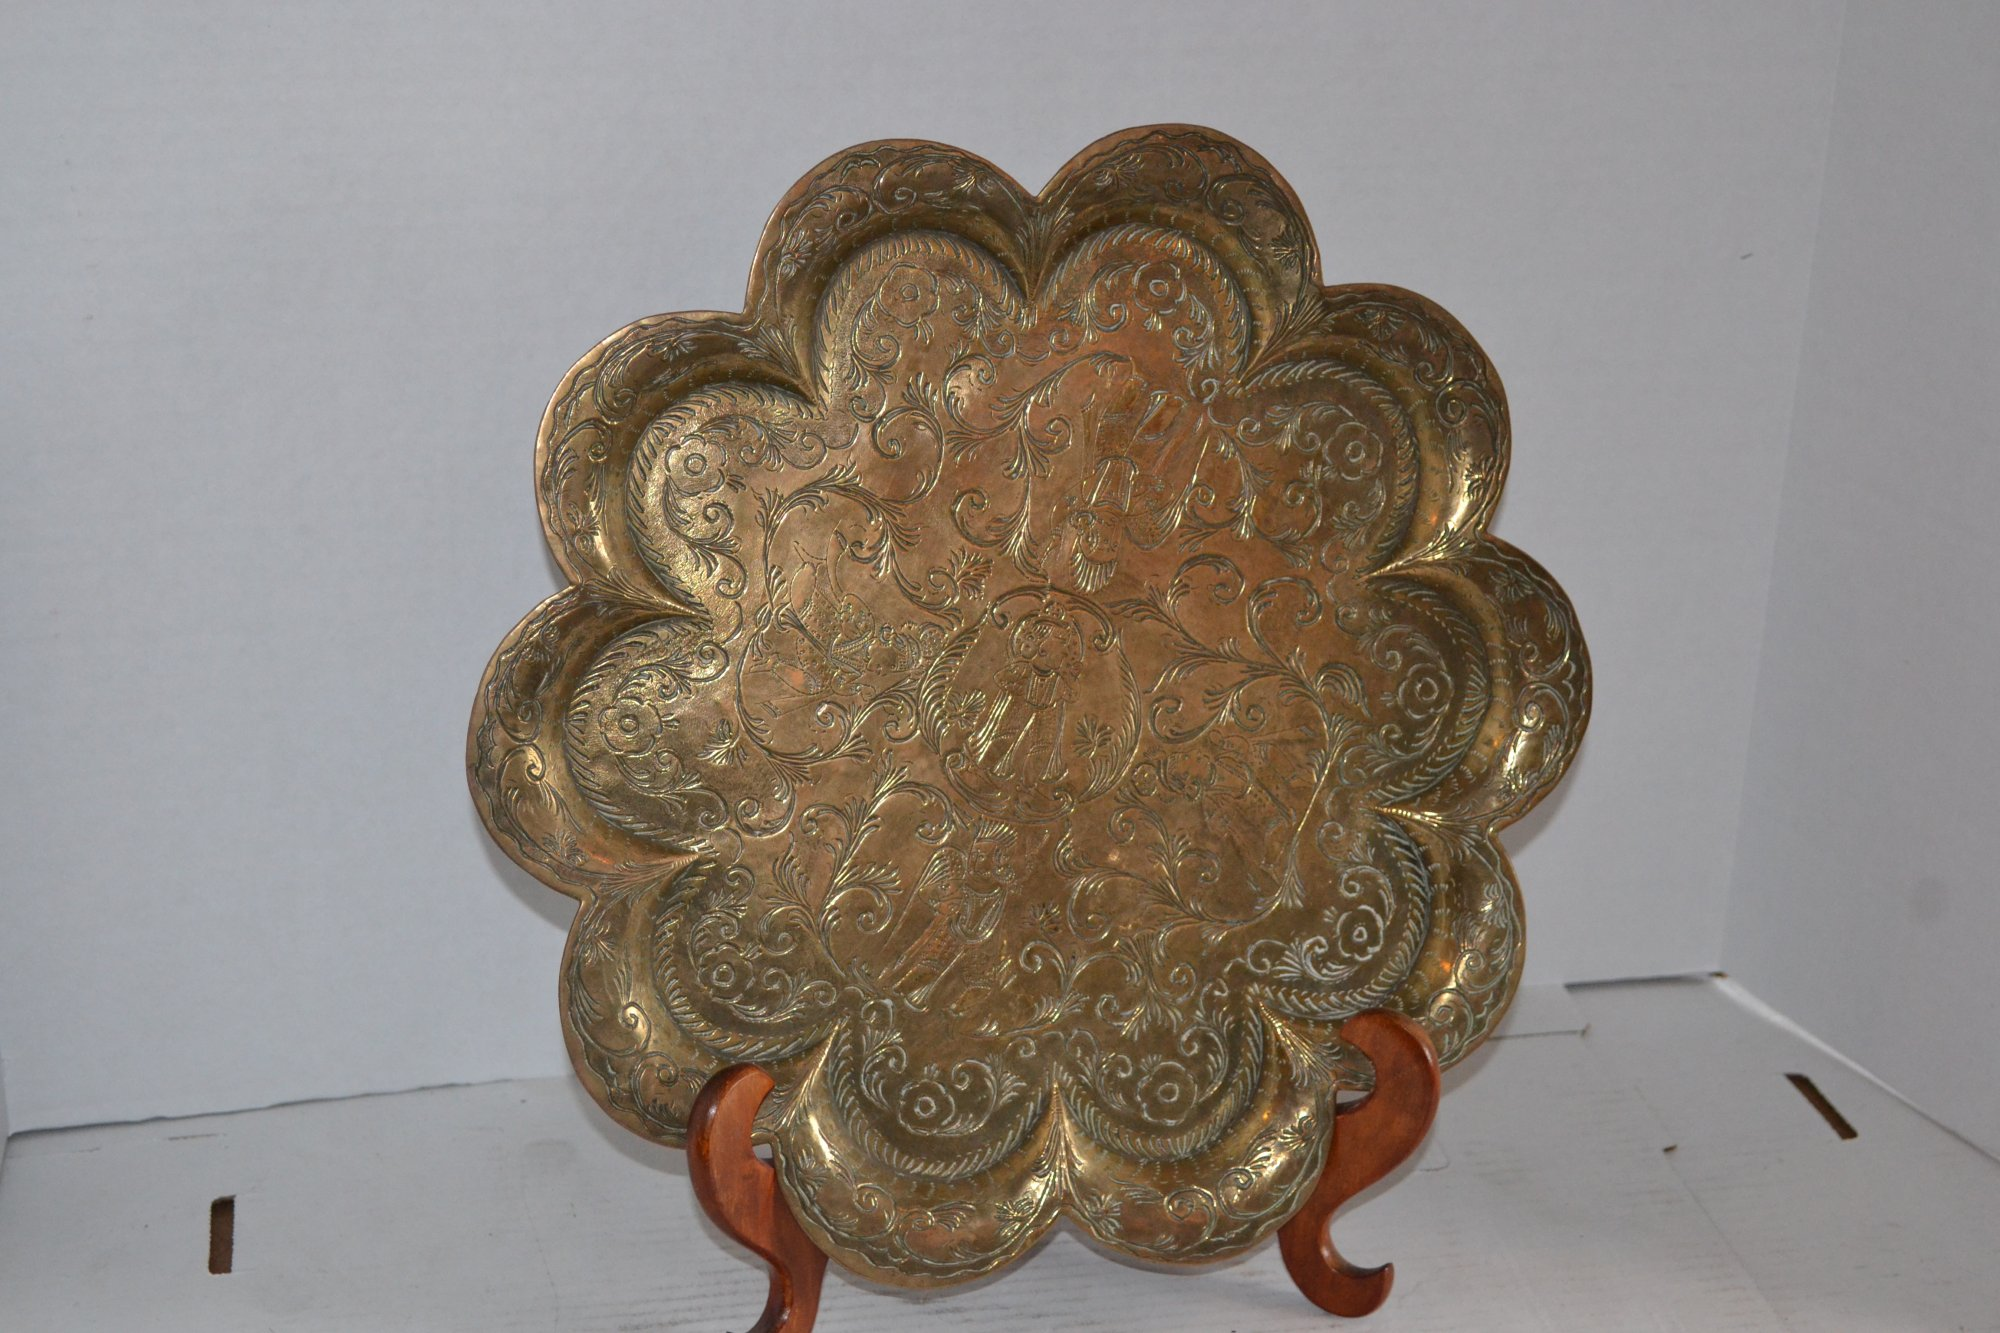 19th Century Perisan Brass Charger Dia. 13 1/2